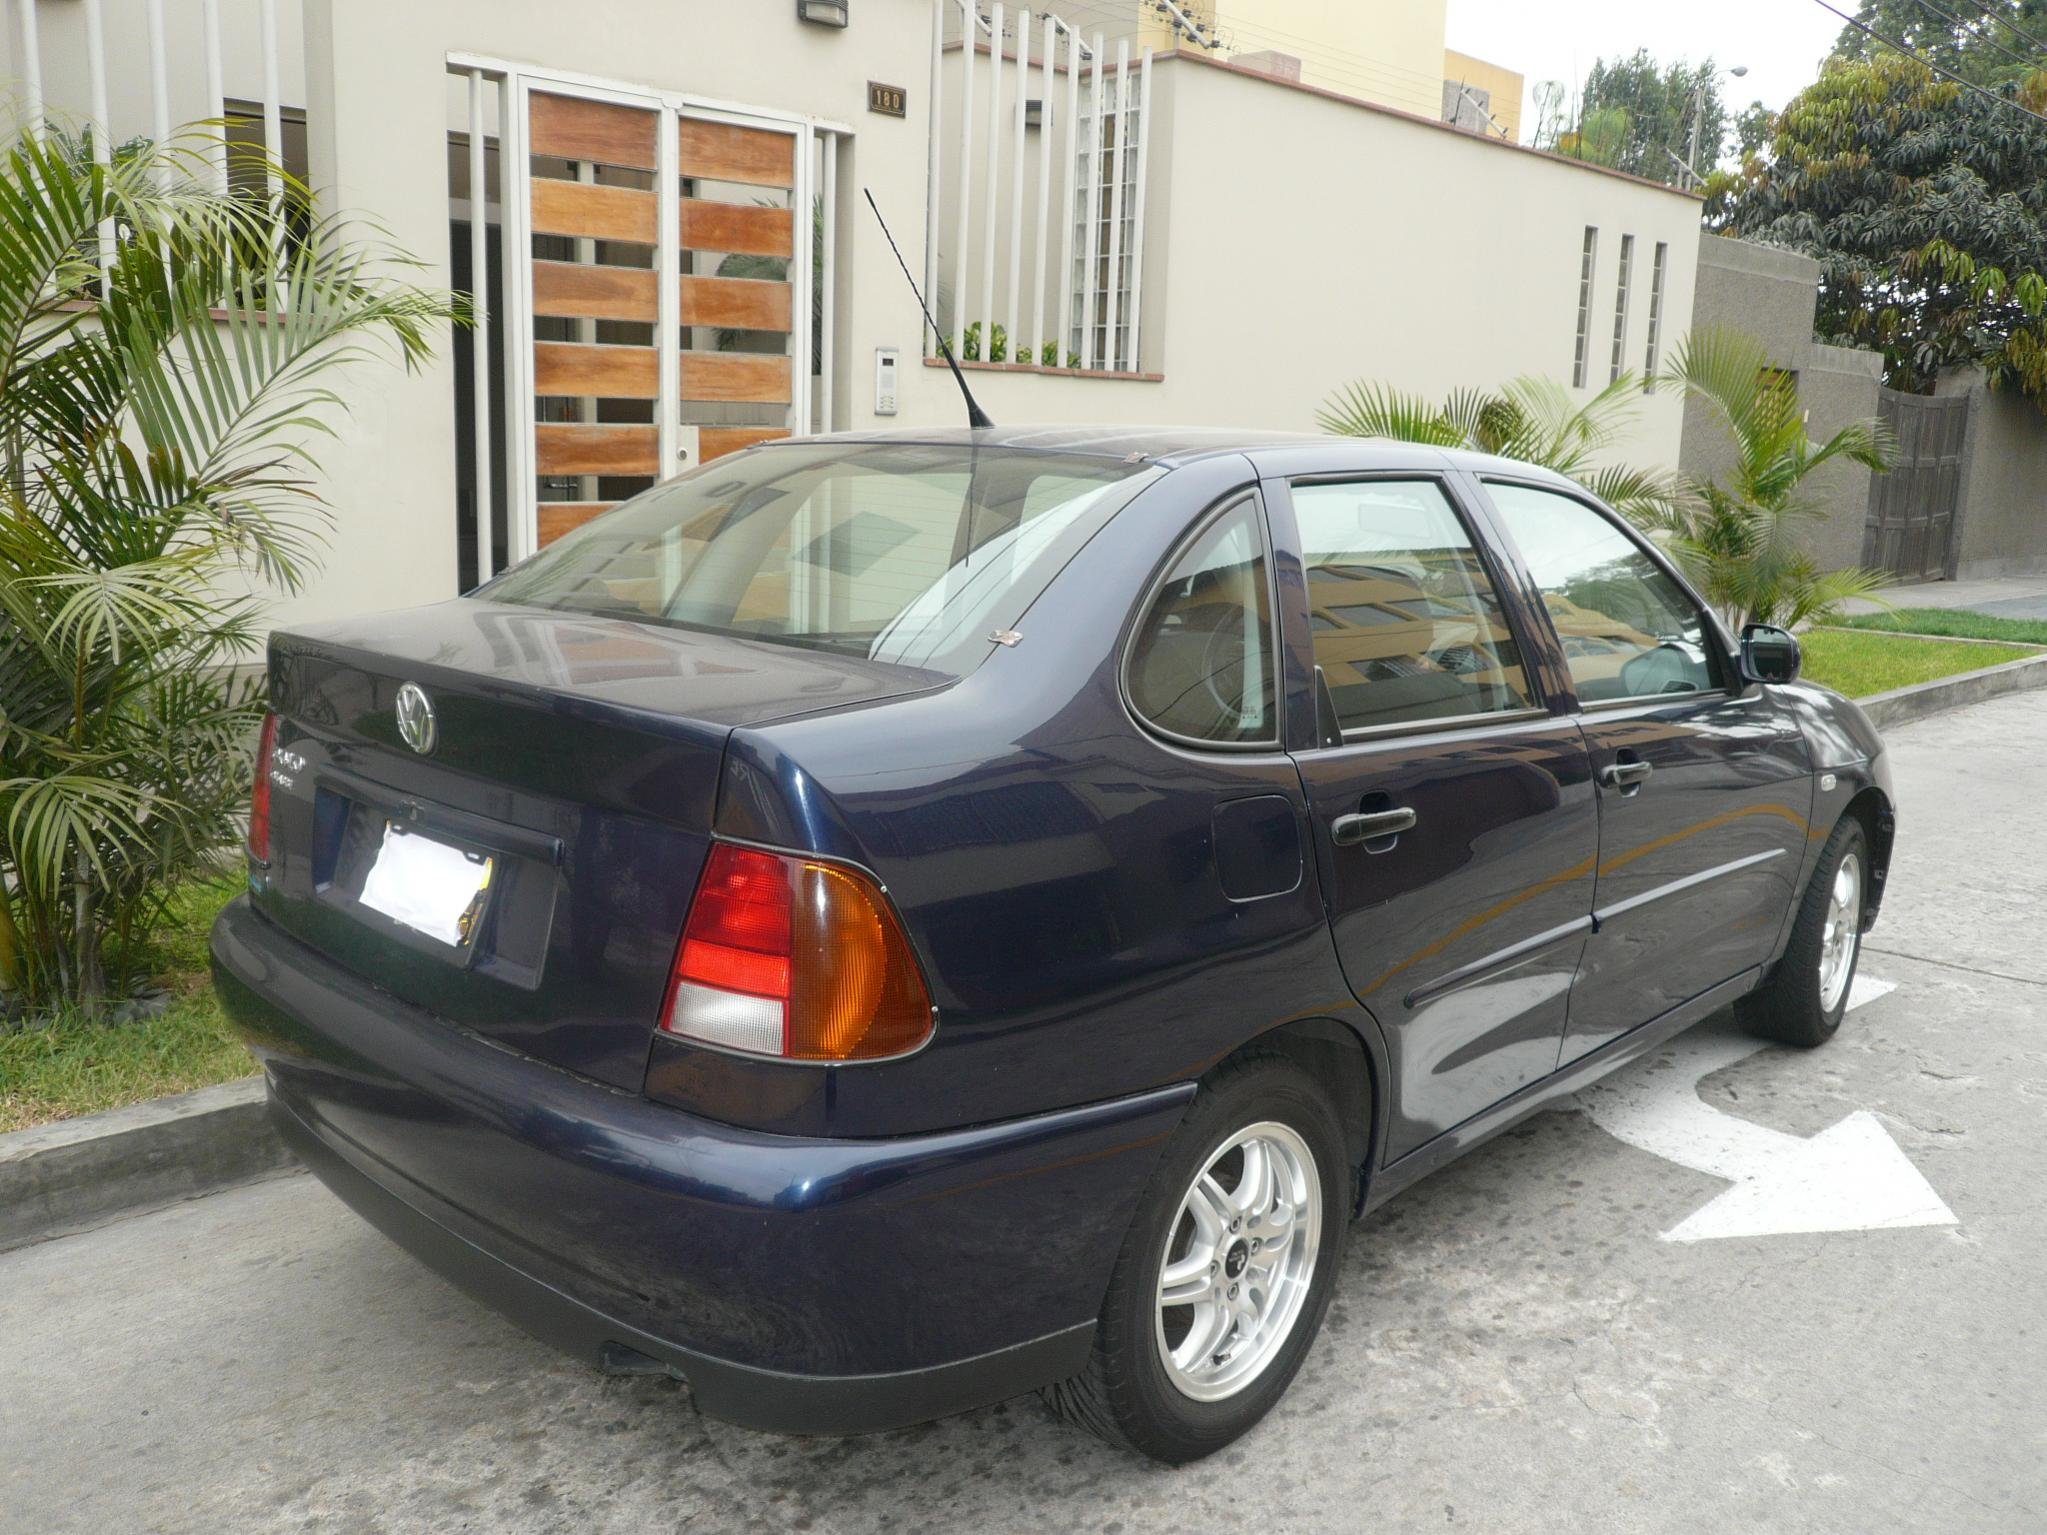 2001 Vw Polo Classic 1 6 Sedan Azul Indigo P1030831jpg Picture